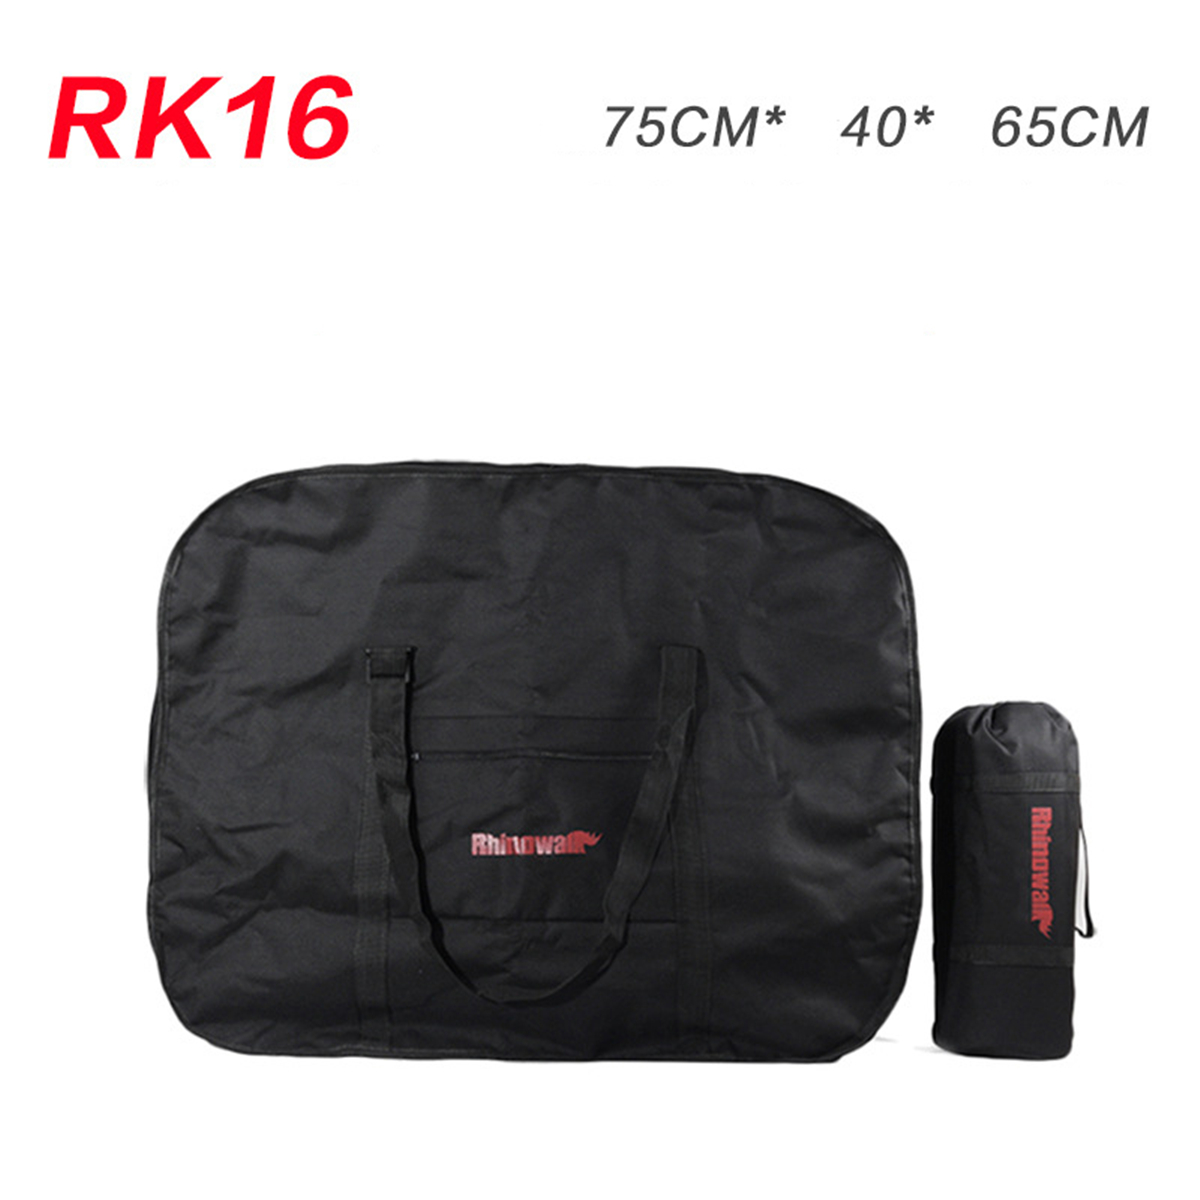 RHINOWALK-Portable-Folding-Bicycle-Bike-Carrier-Carry-Packing-Storage-Bag-Cover